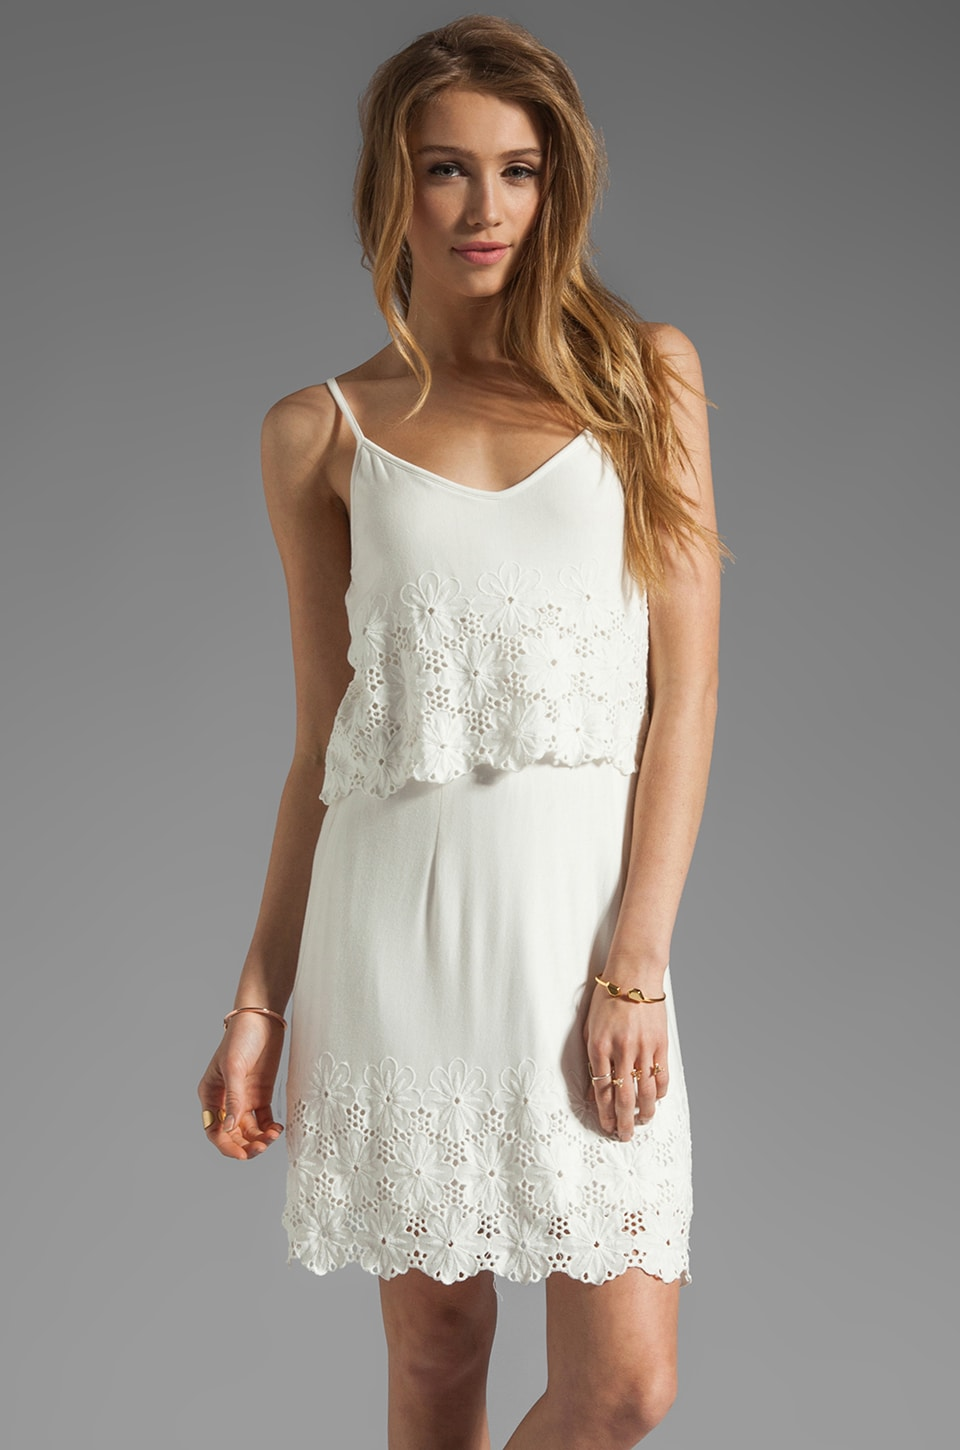 Dolce Vita Jeralyn Hem Daisy Tank Dress in White